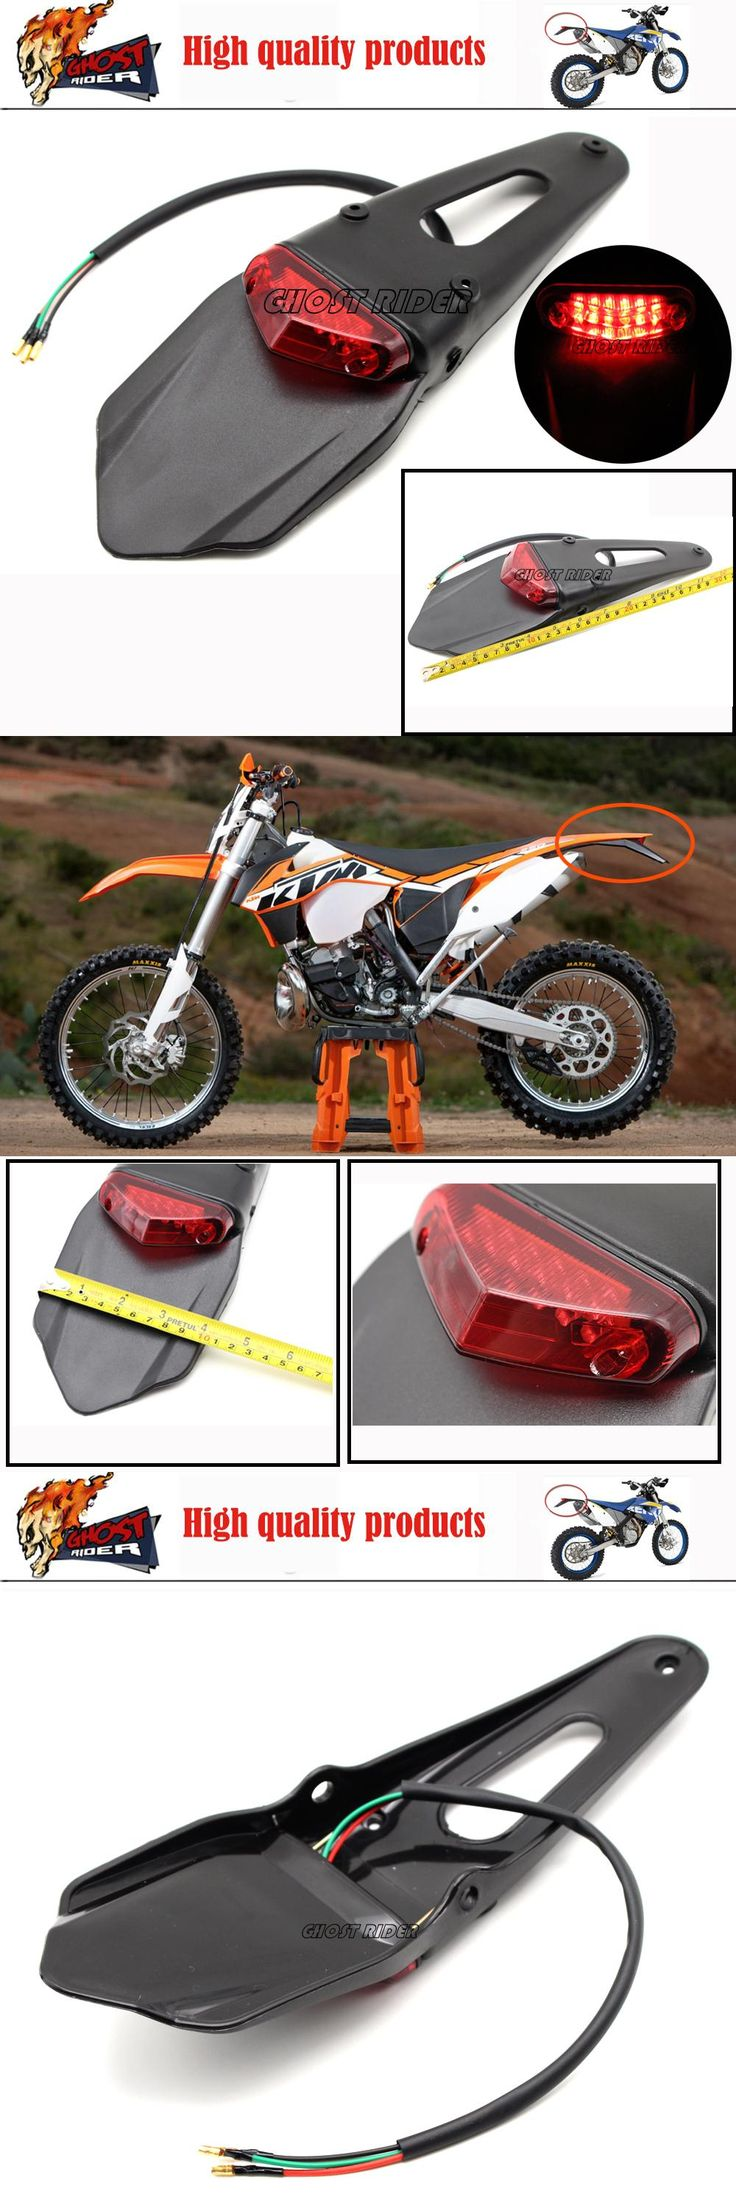 [Visit to Buy] Polisport Motorcycle LED Tail Light&Rear Fender Stop Enduro taillight MX Trail Supermoto KTM CR EXC WRF 250 400 426 450 #Advertisement